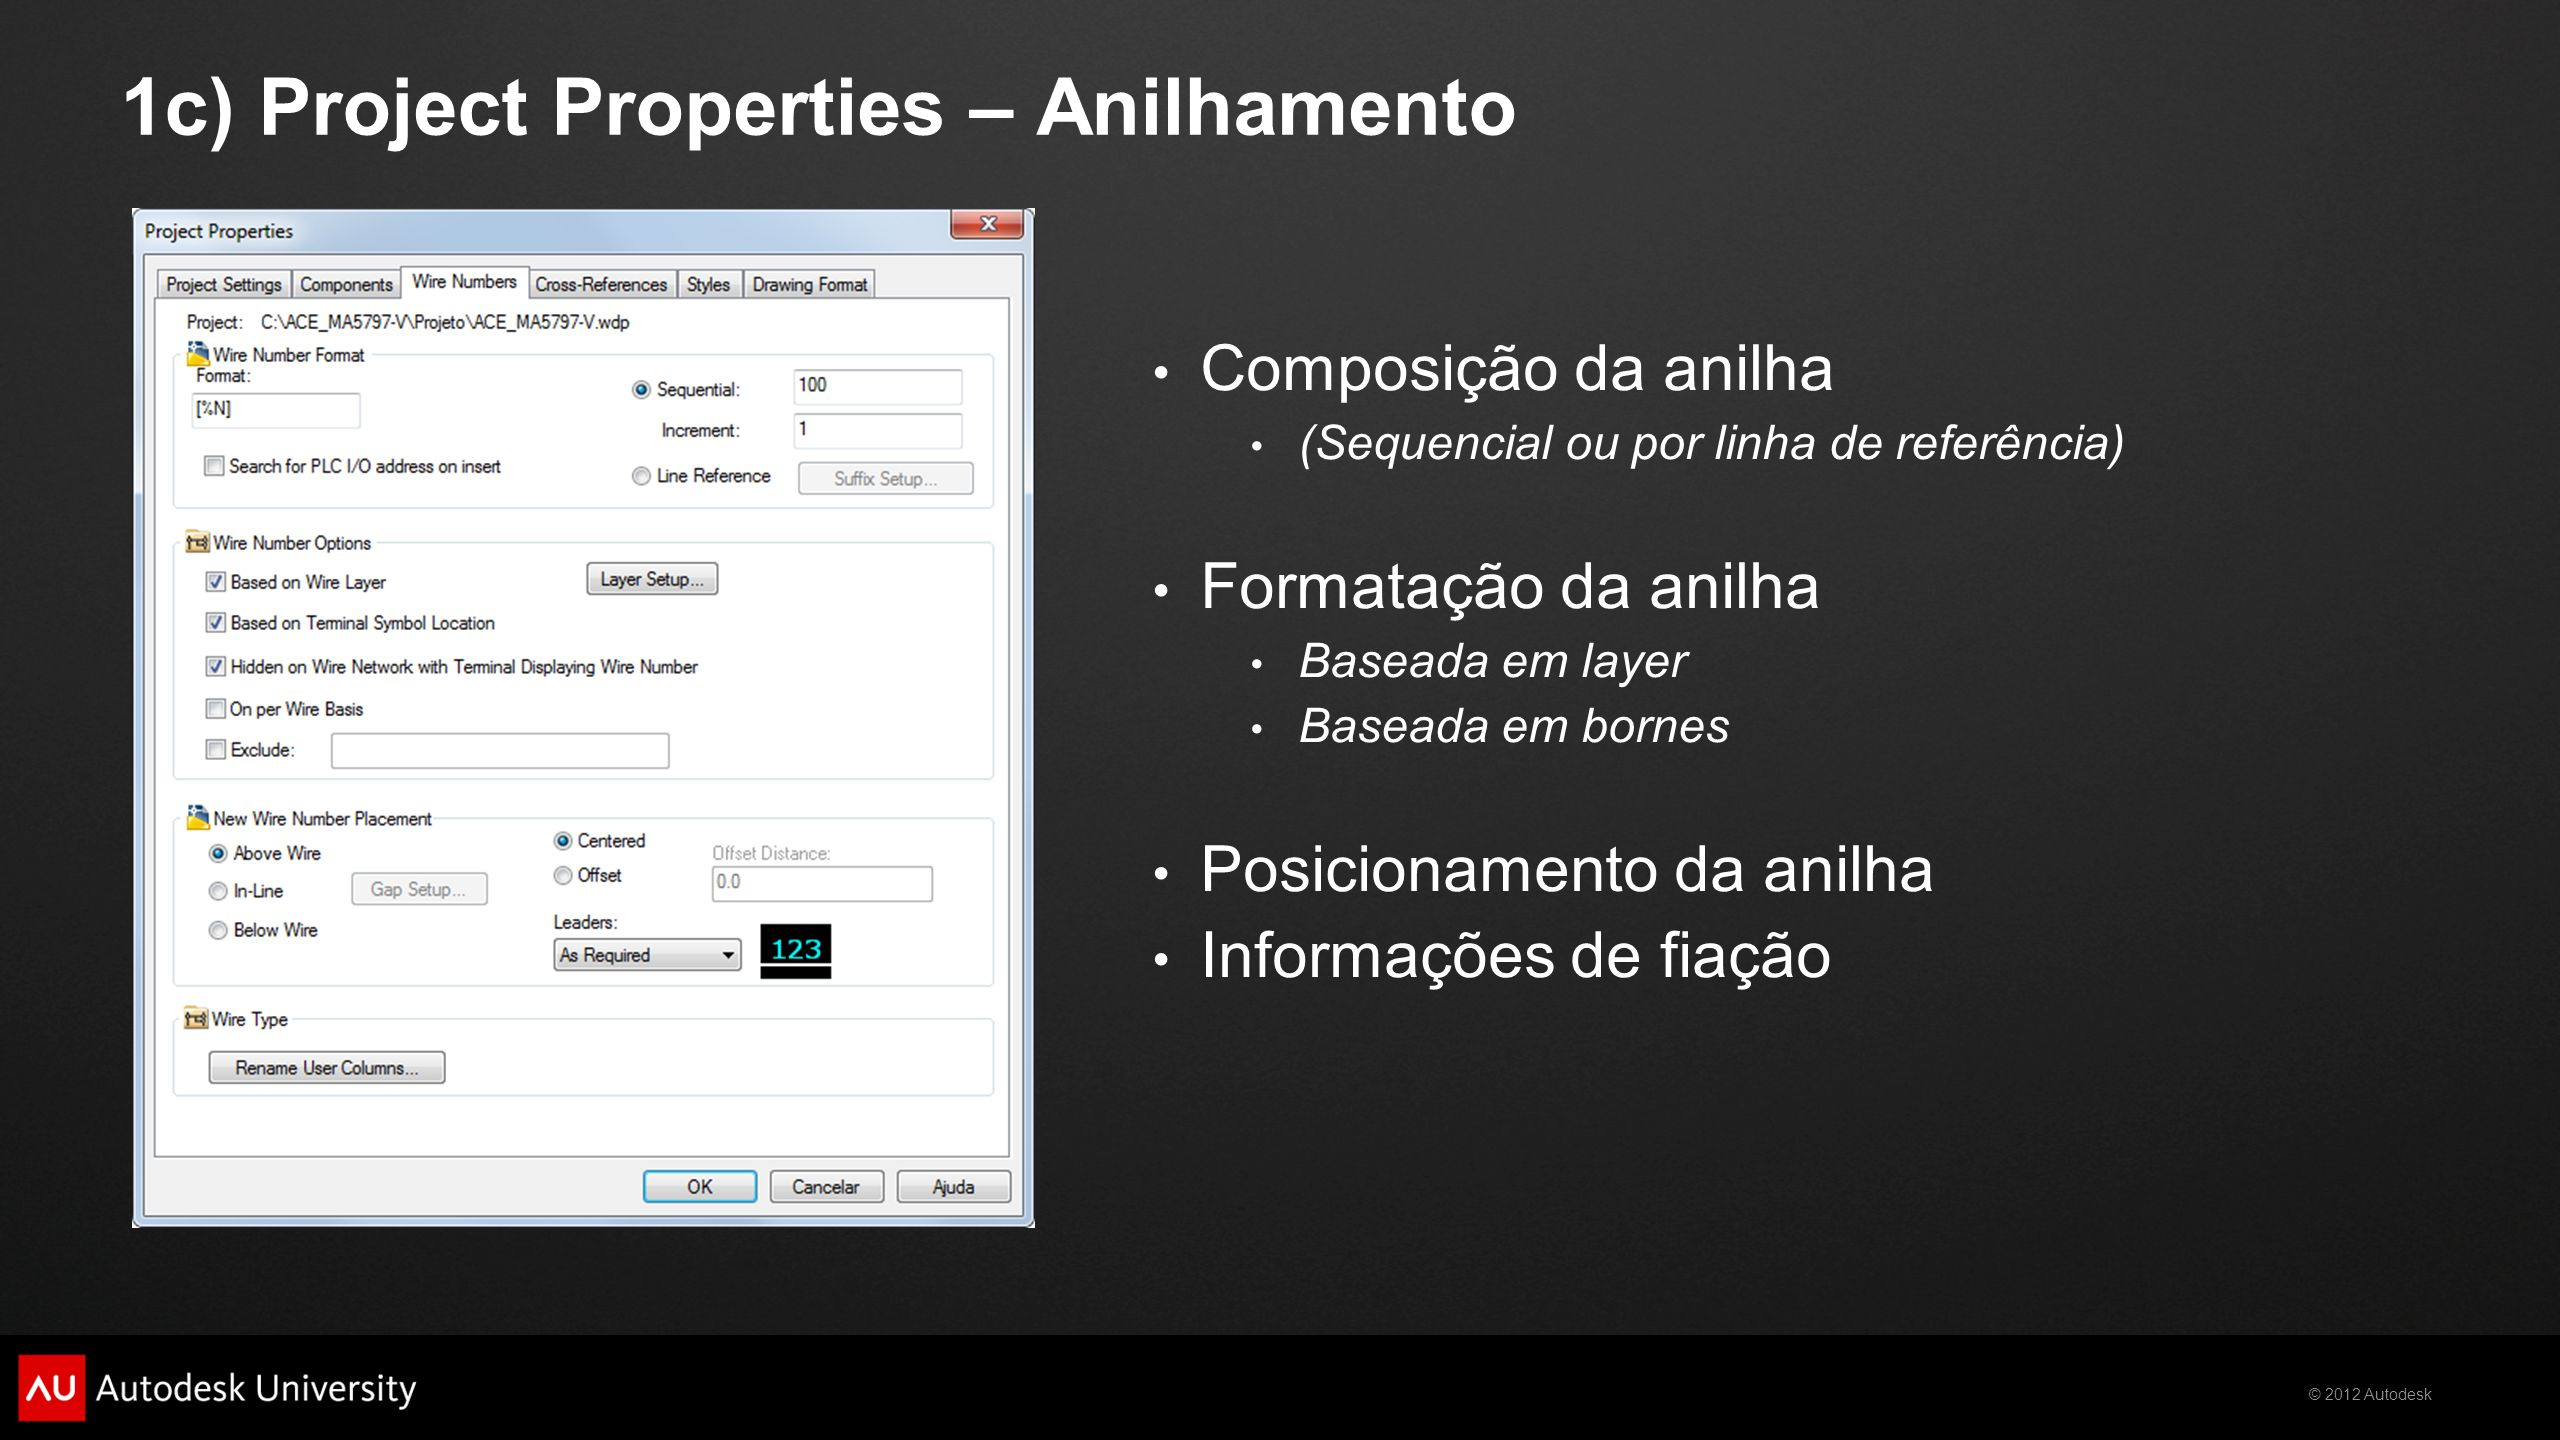 1c) Project Properties – Anilhamento